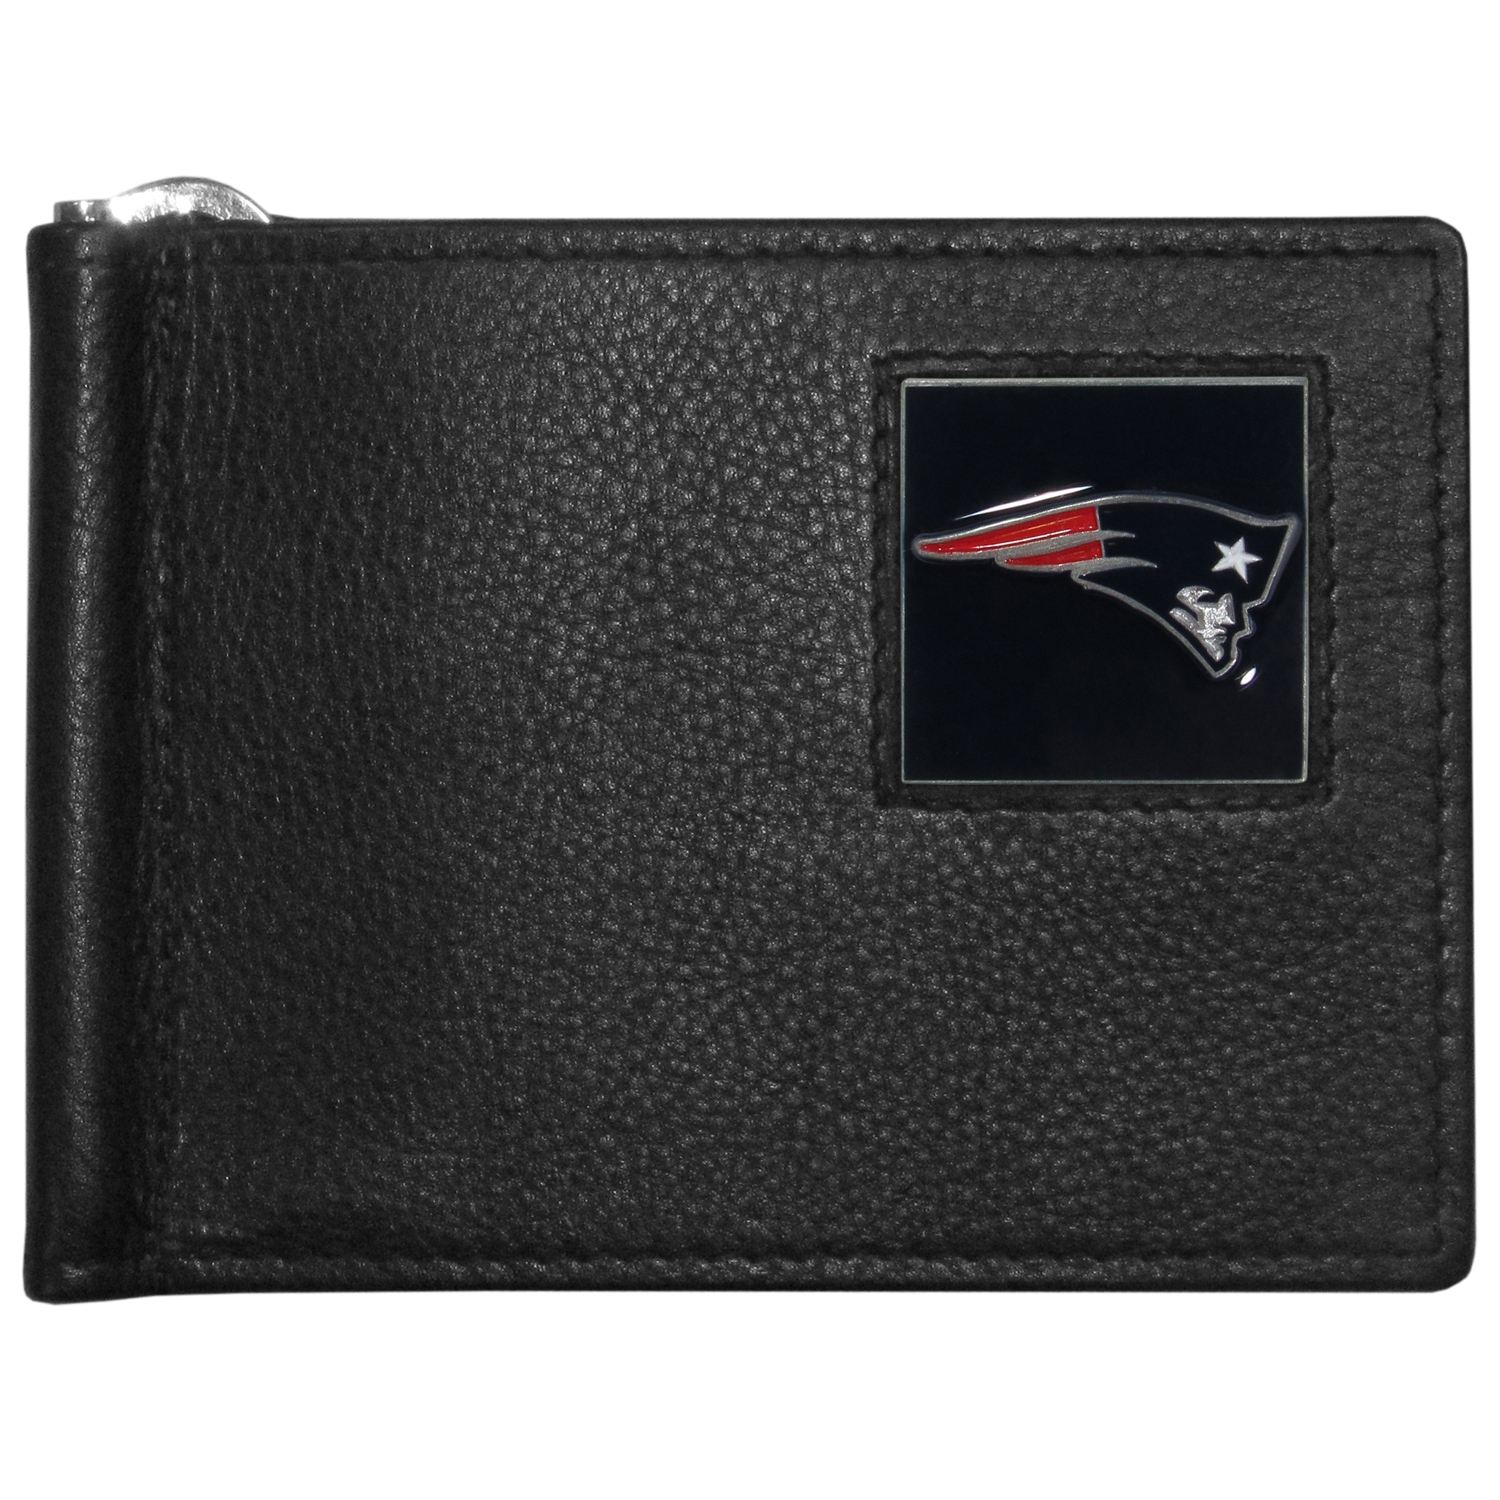 New England Patriots Leather Bill Clip Wallet - This cool new style wallet features an inner, metal bill clip that lips up for easy access. The super slim wallet holds tons of stuff with ample pockets, credit card slots & windowed ID slot.  The wallet is made of genuine fine grain leather and it finished with a metal New England Patriots emblem. The wallet is shipped in gift box packaging.